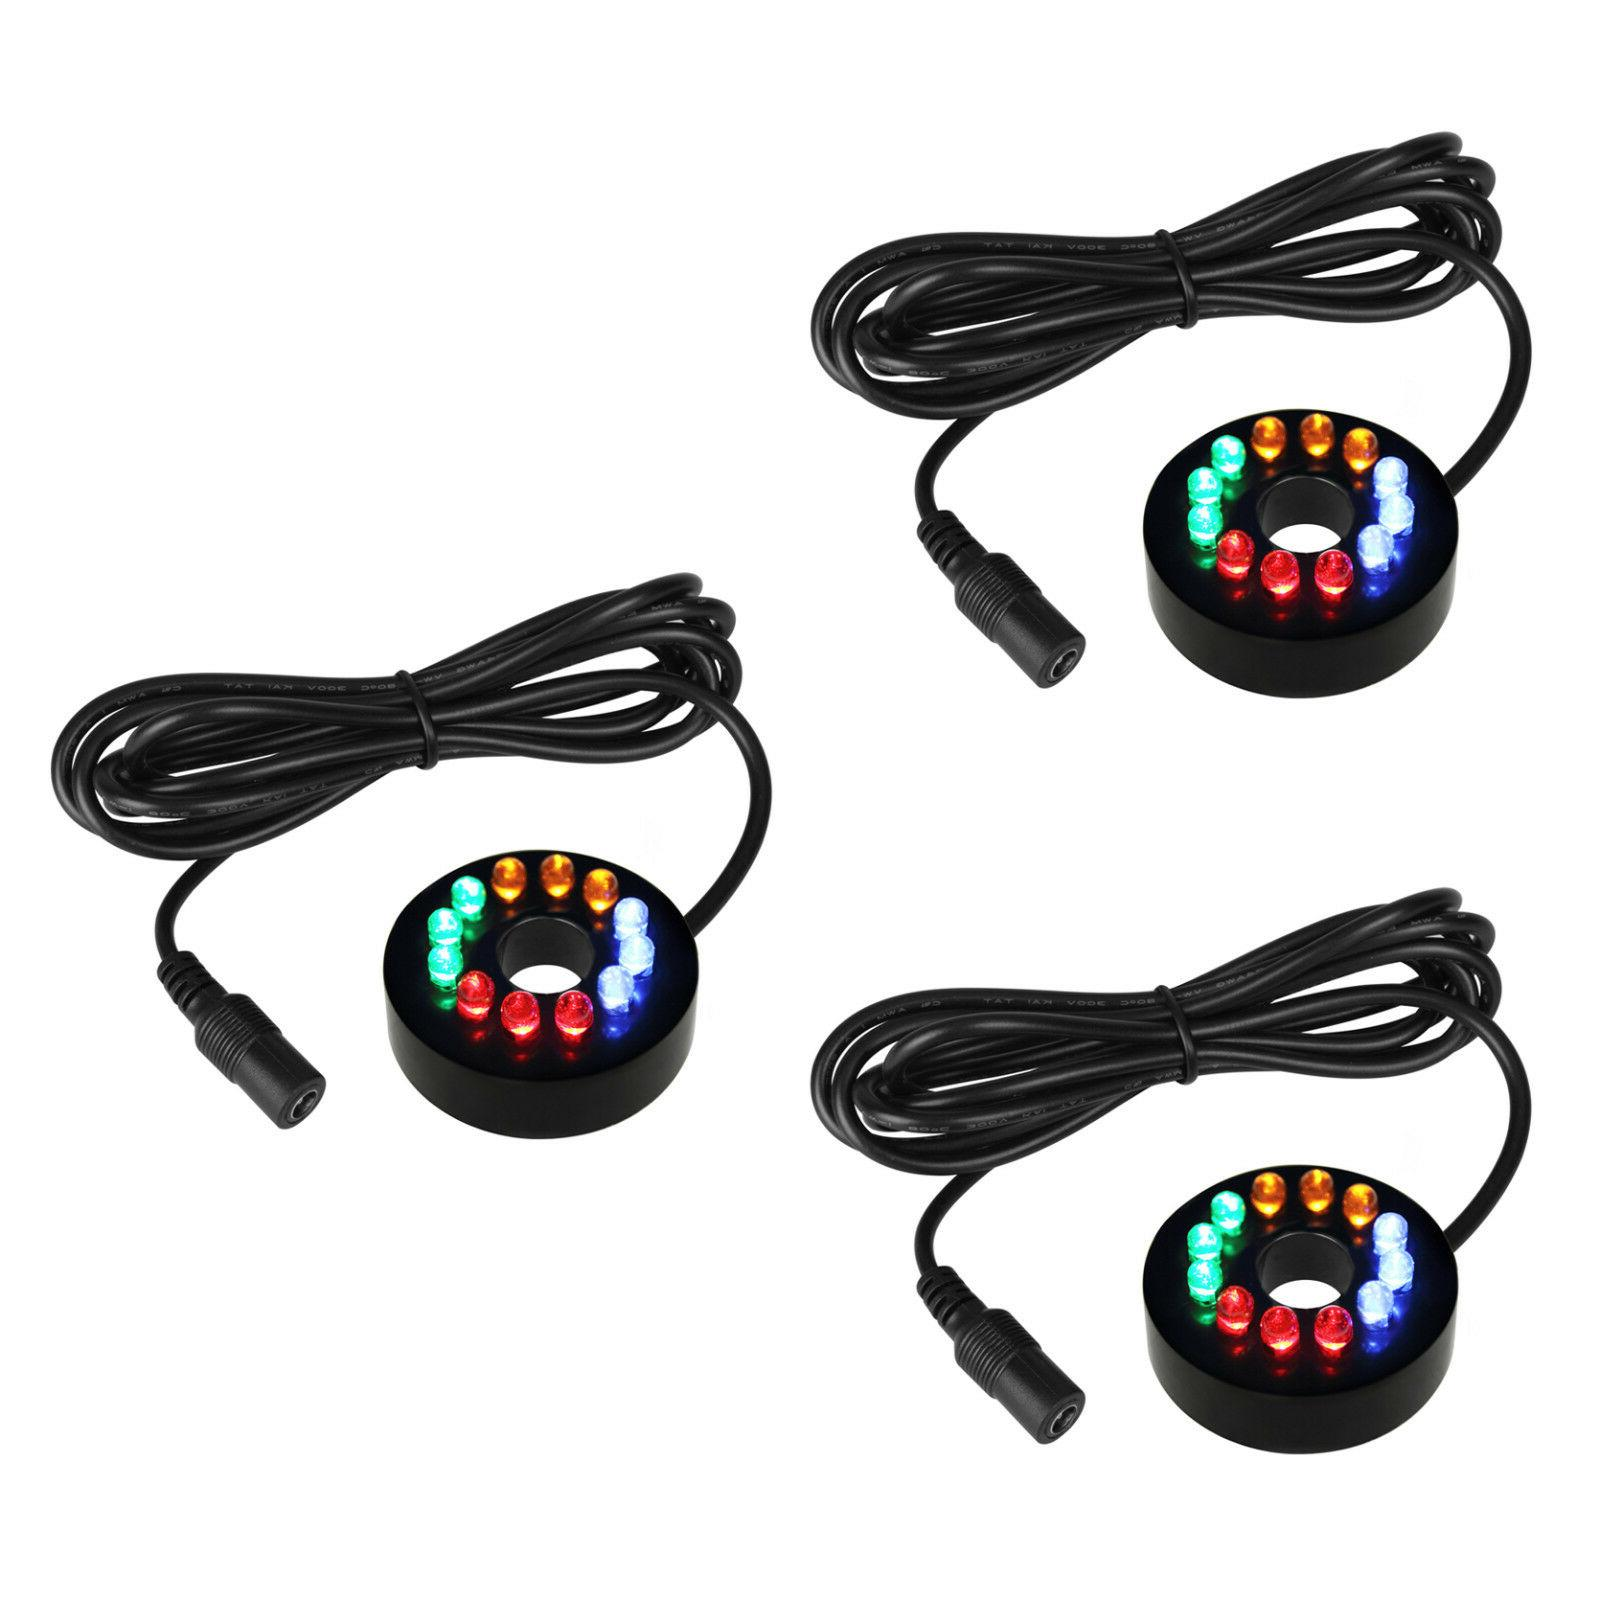 3pcs fountain ring lights 12 leds auto